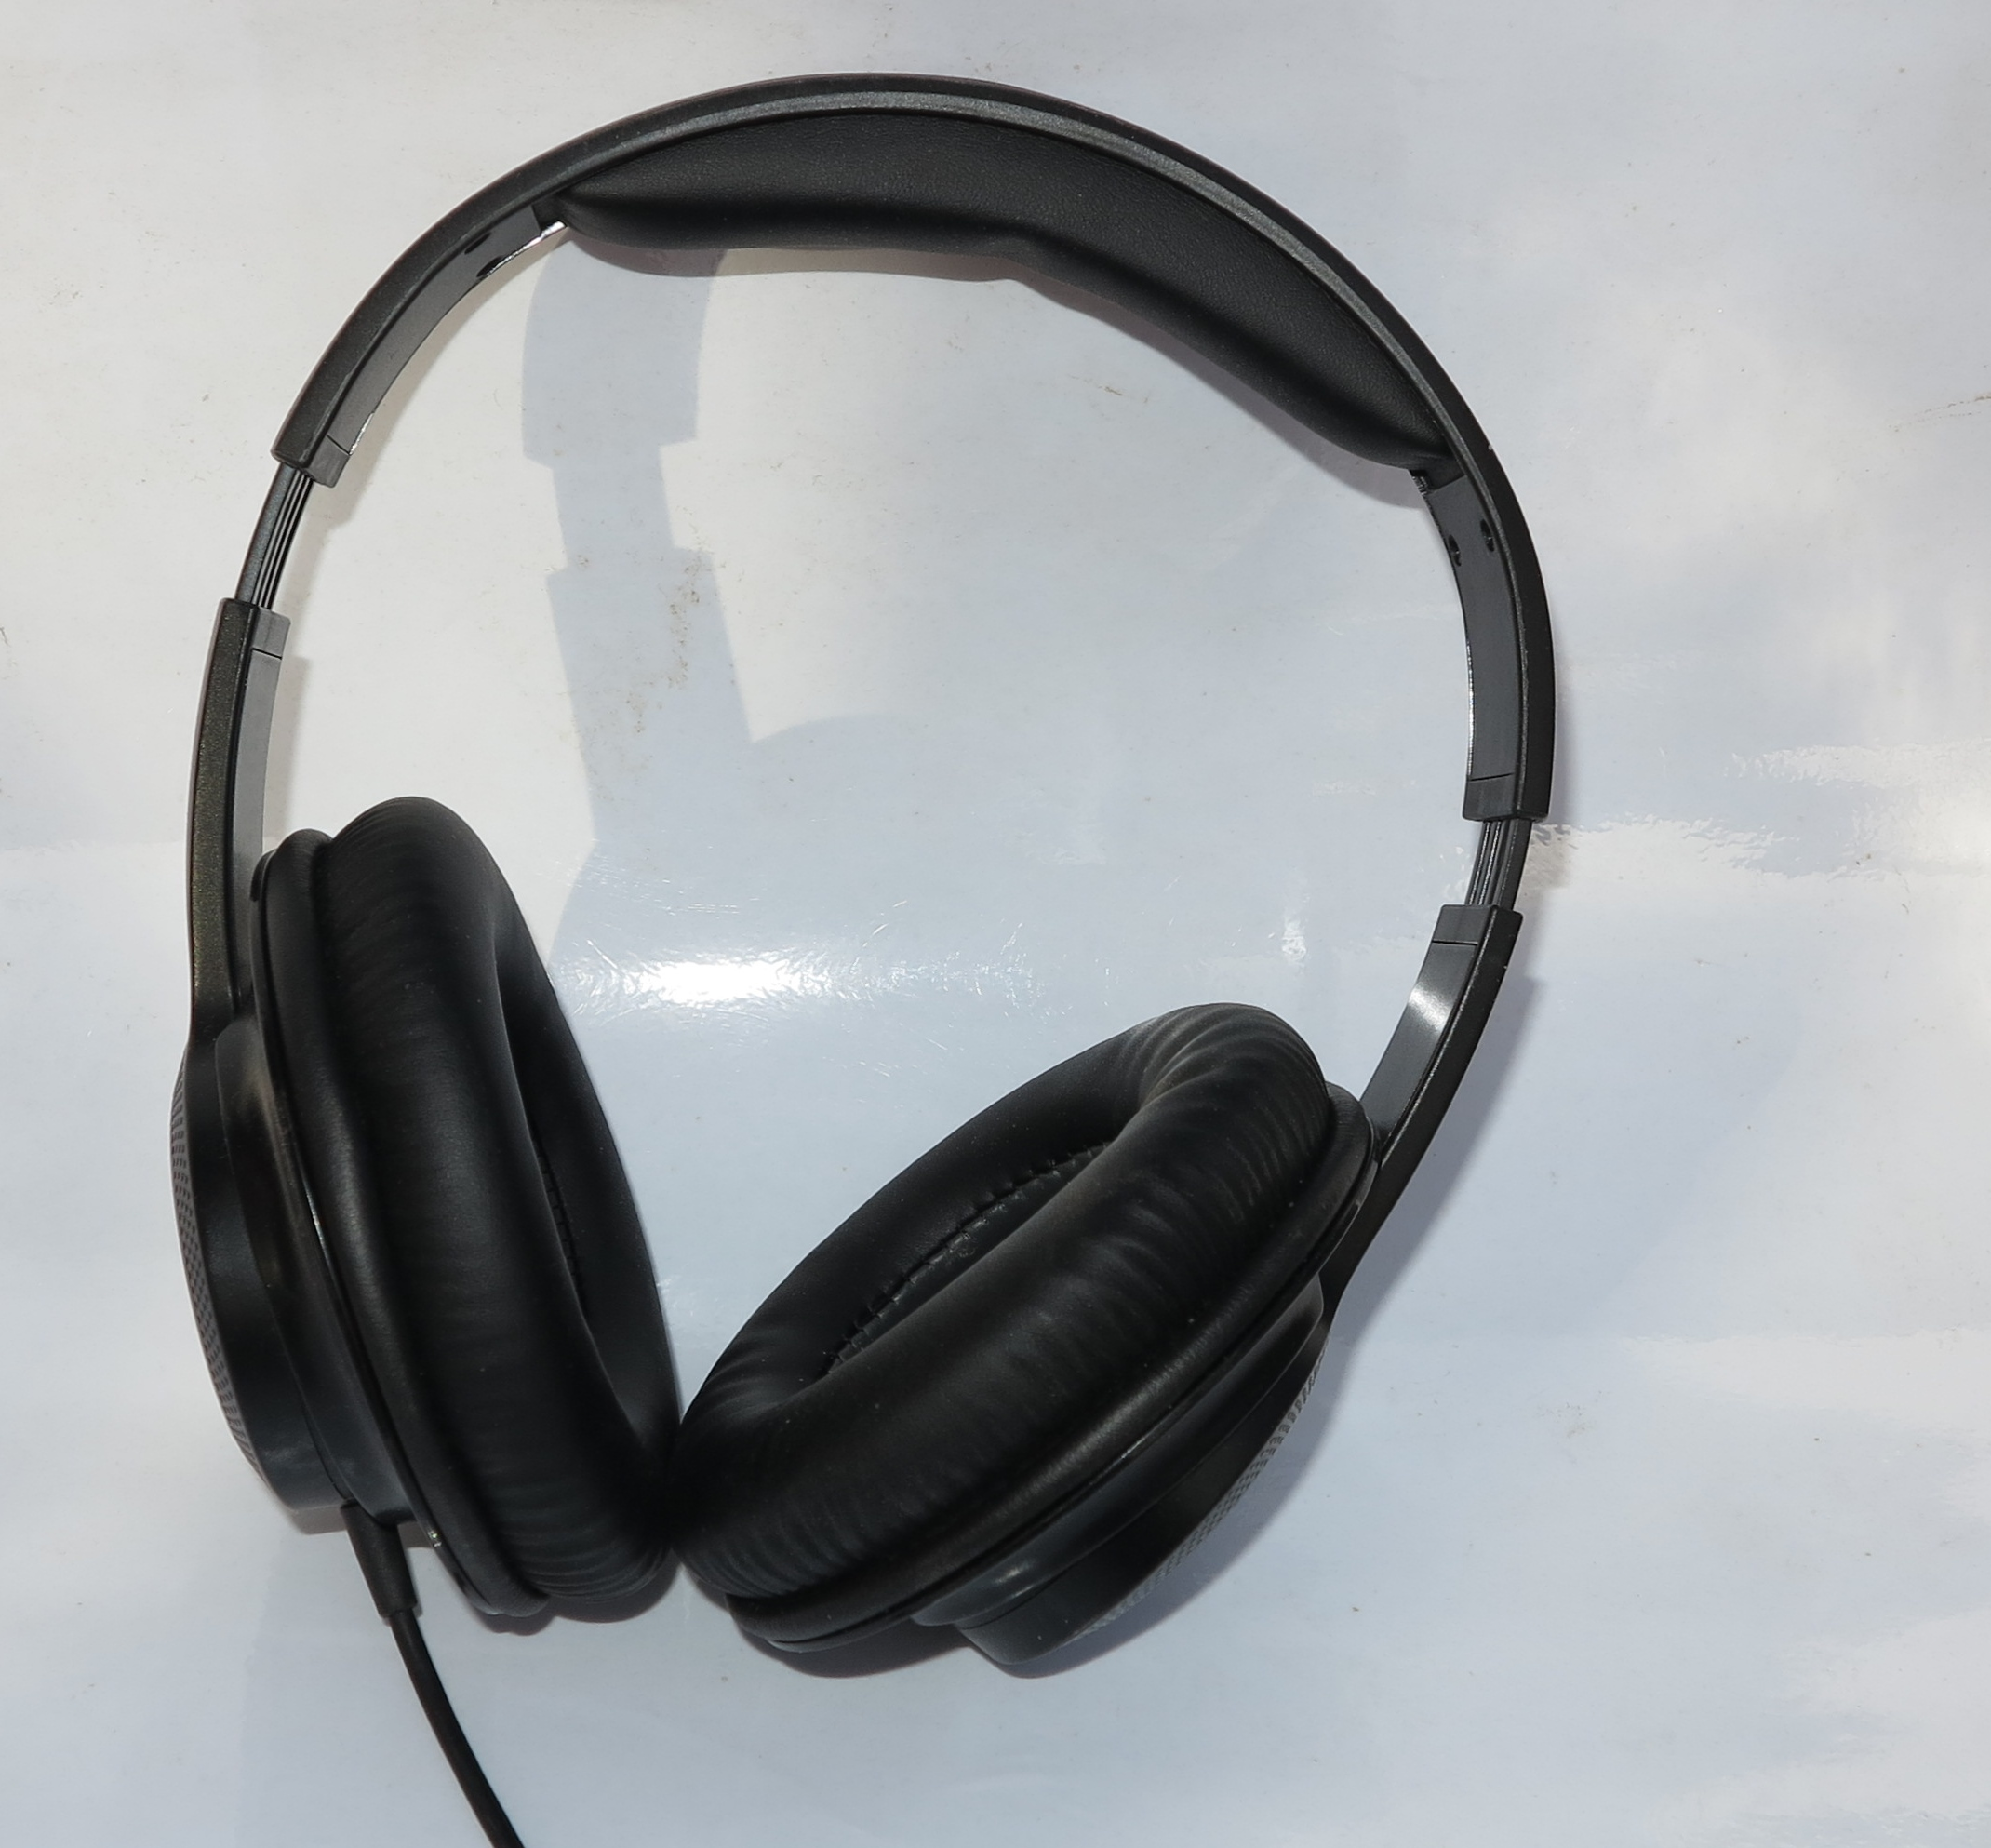 Dell AE2 Performance USB Headset